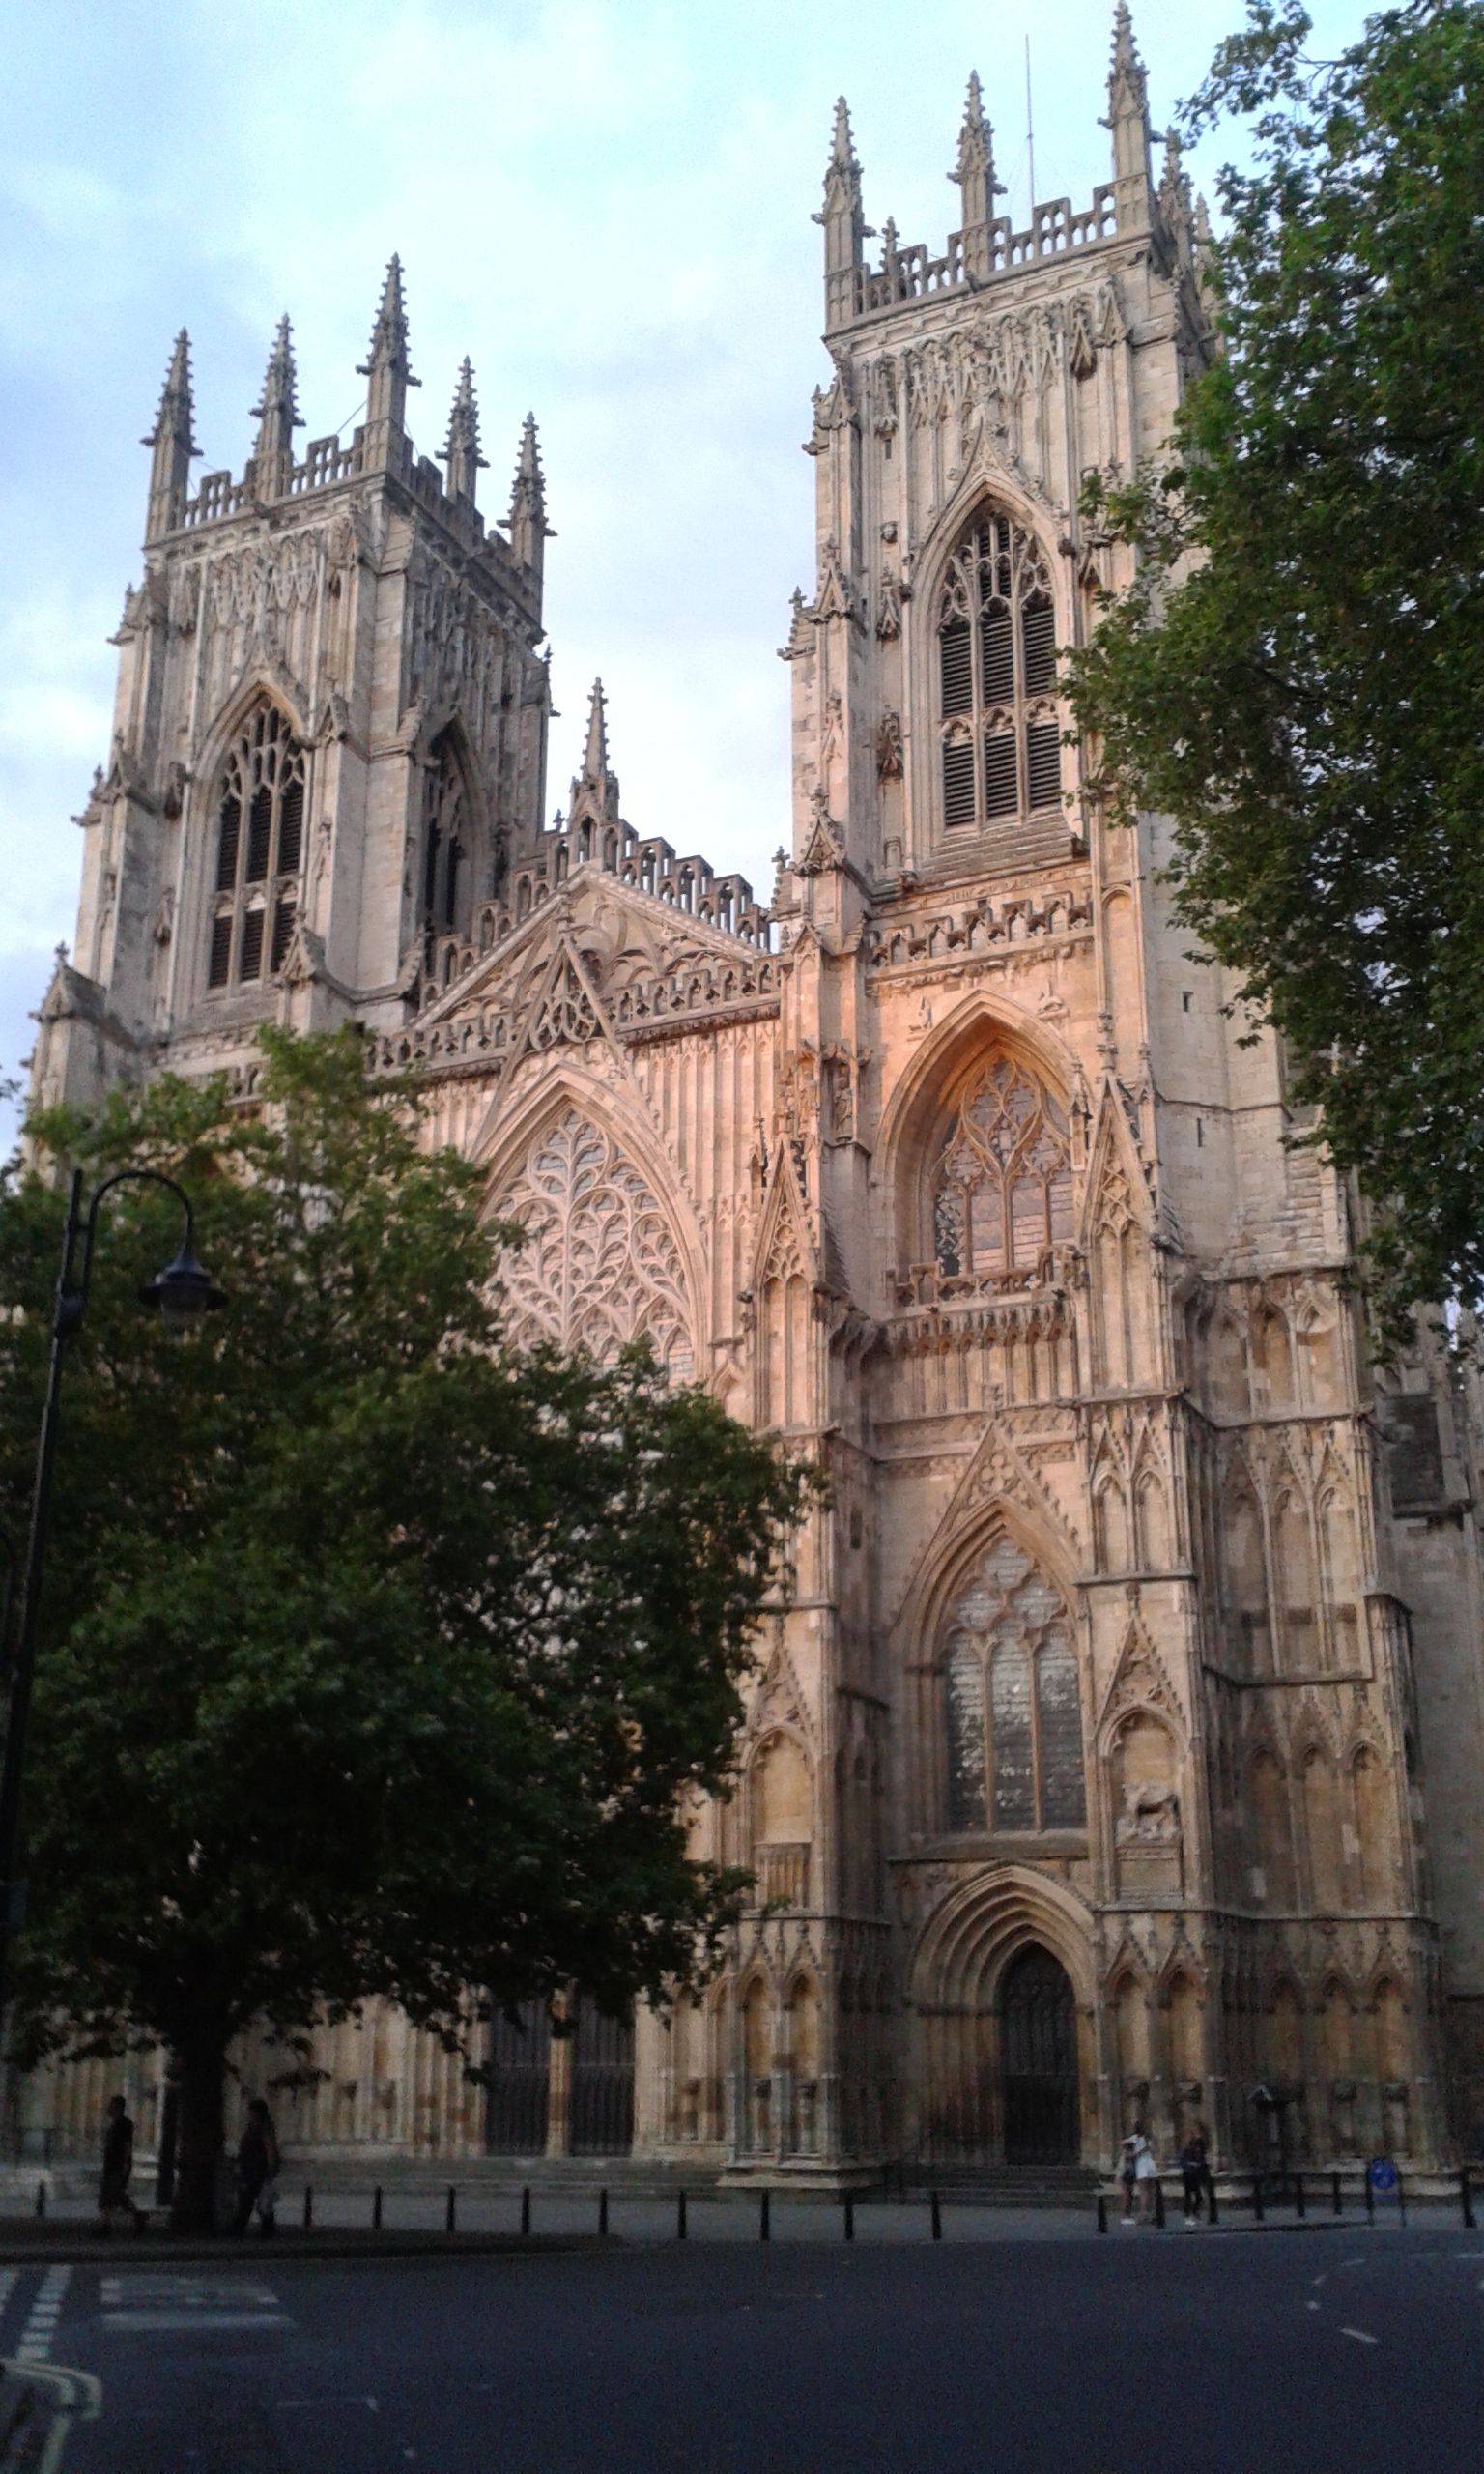 minster york cathedral england west church st churches peter medieval wikipedia history wiki mstr richard